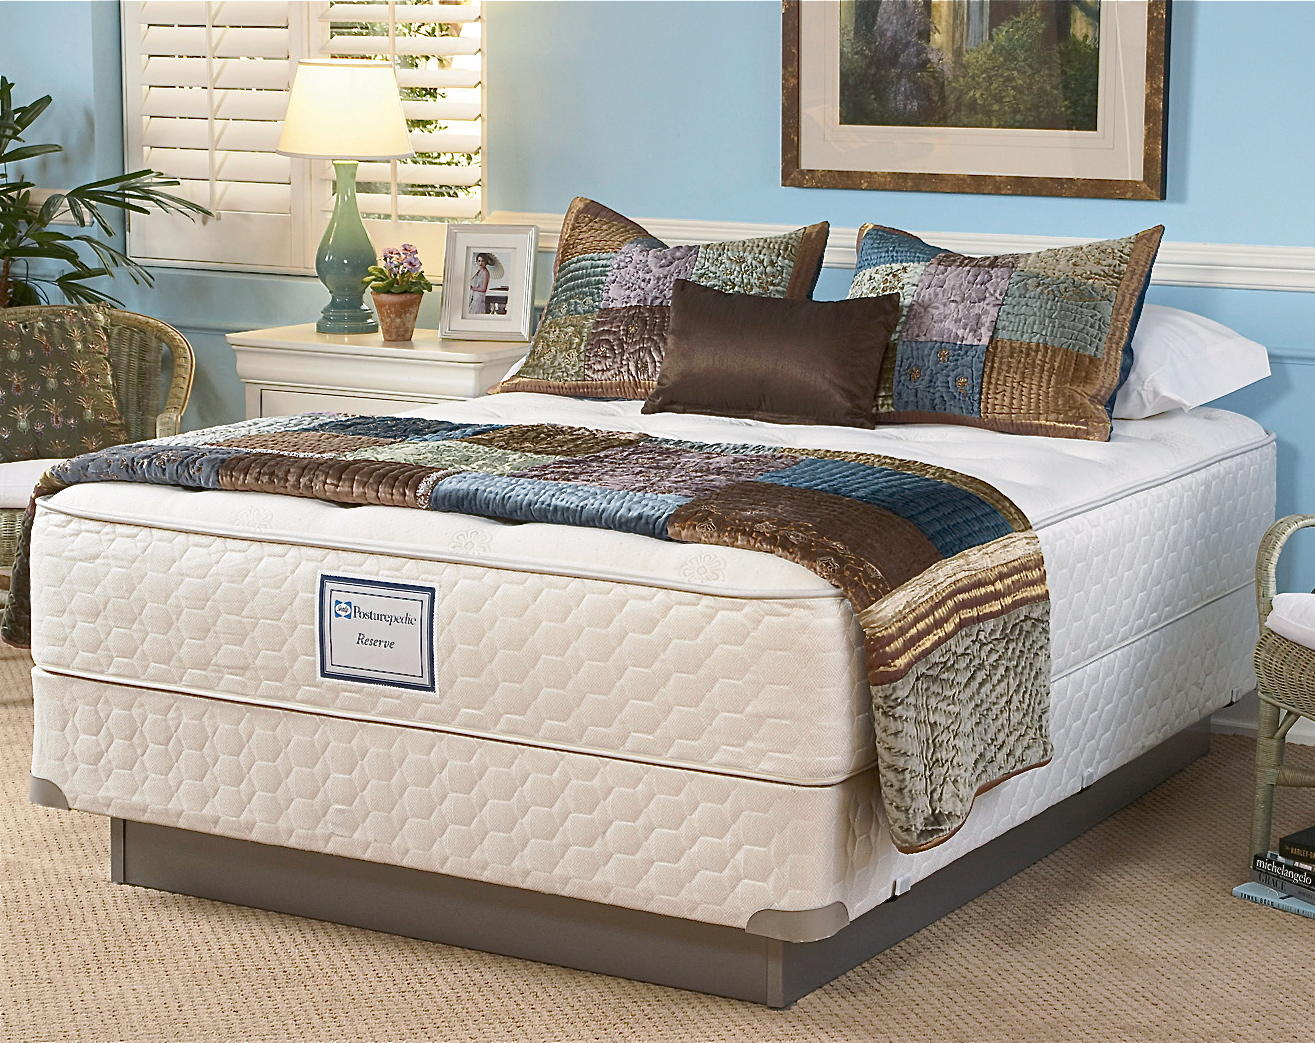 $75 Off Serta Perfect Sleeper Hotel Regal Suite Mattresses @ US-Mattress.com